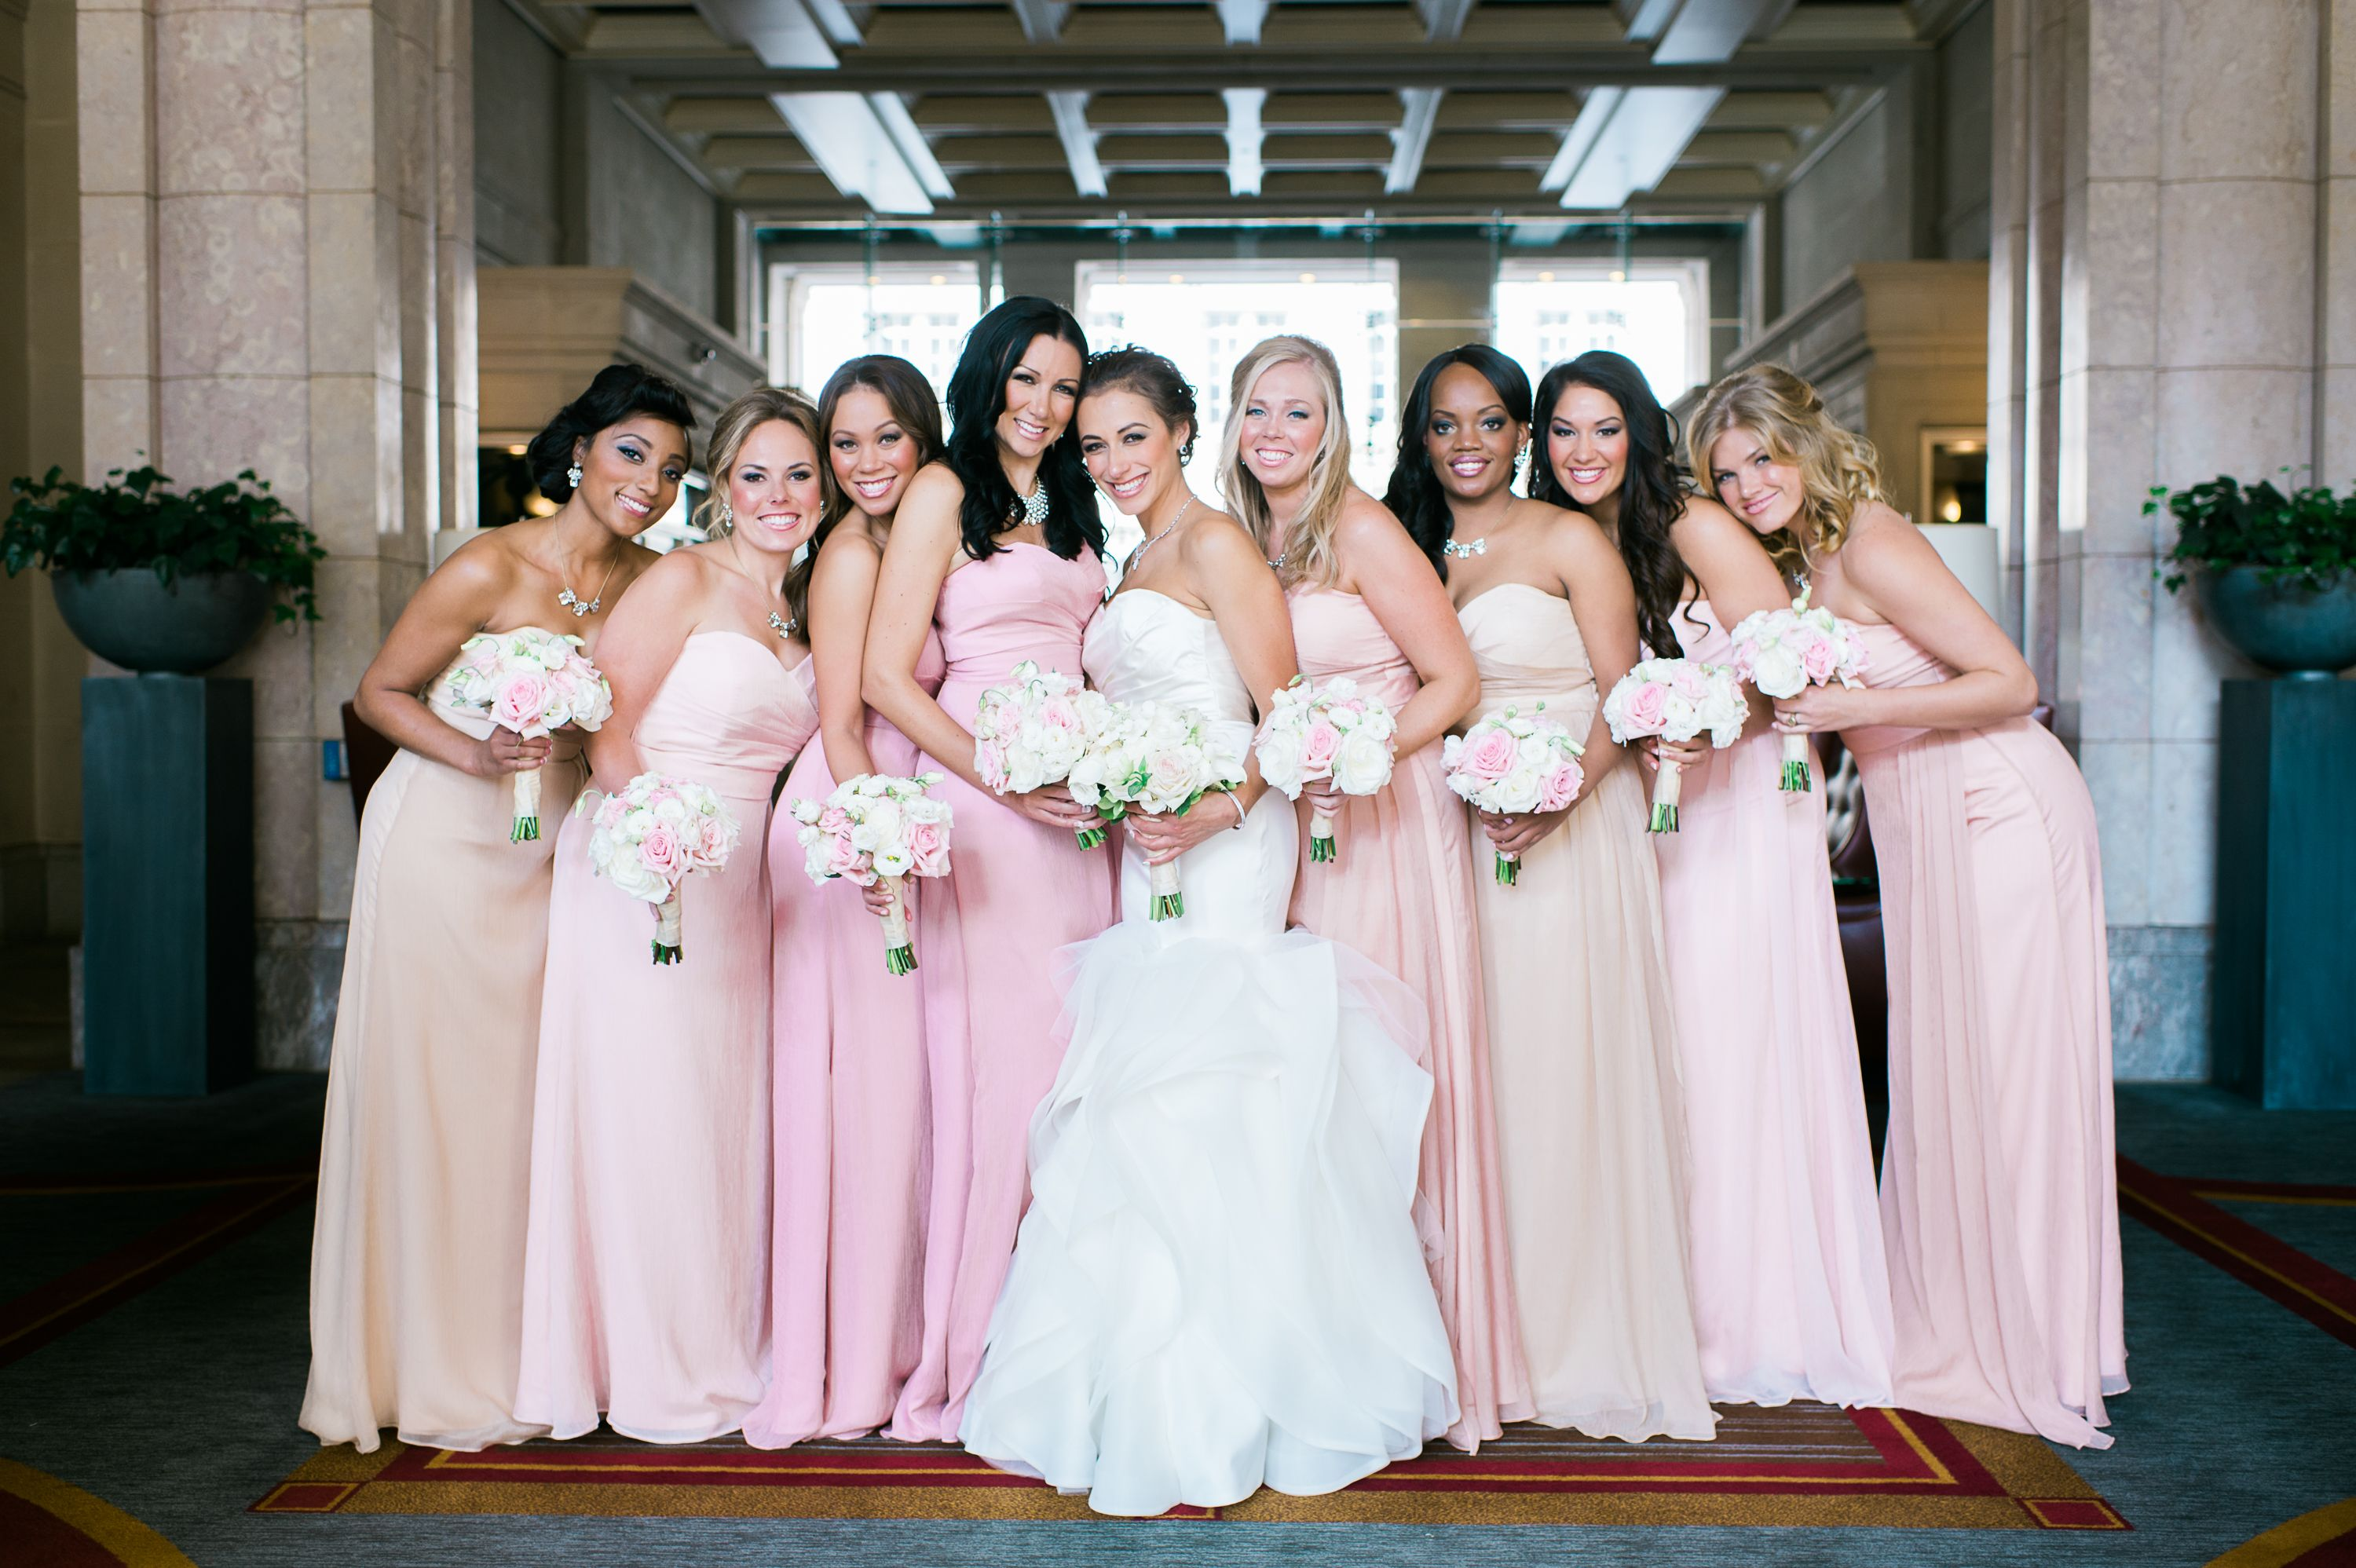 Floor length bridesmaid dresses in shades of pink wedding theme floor length bridesmaid dresses in shades of pink ombrellifo Image collections